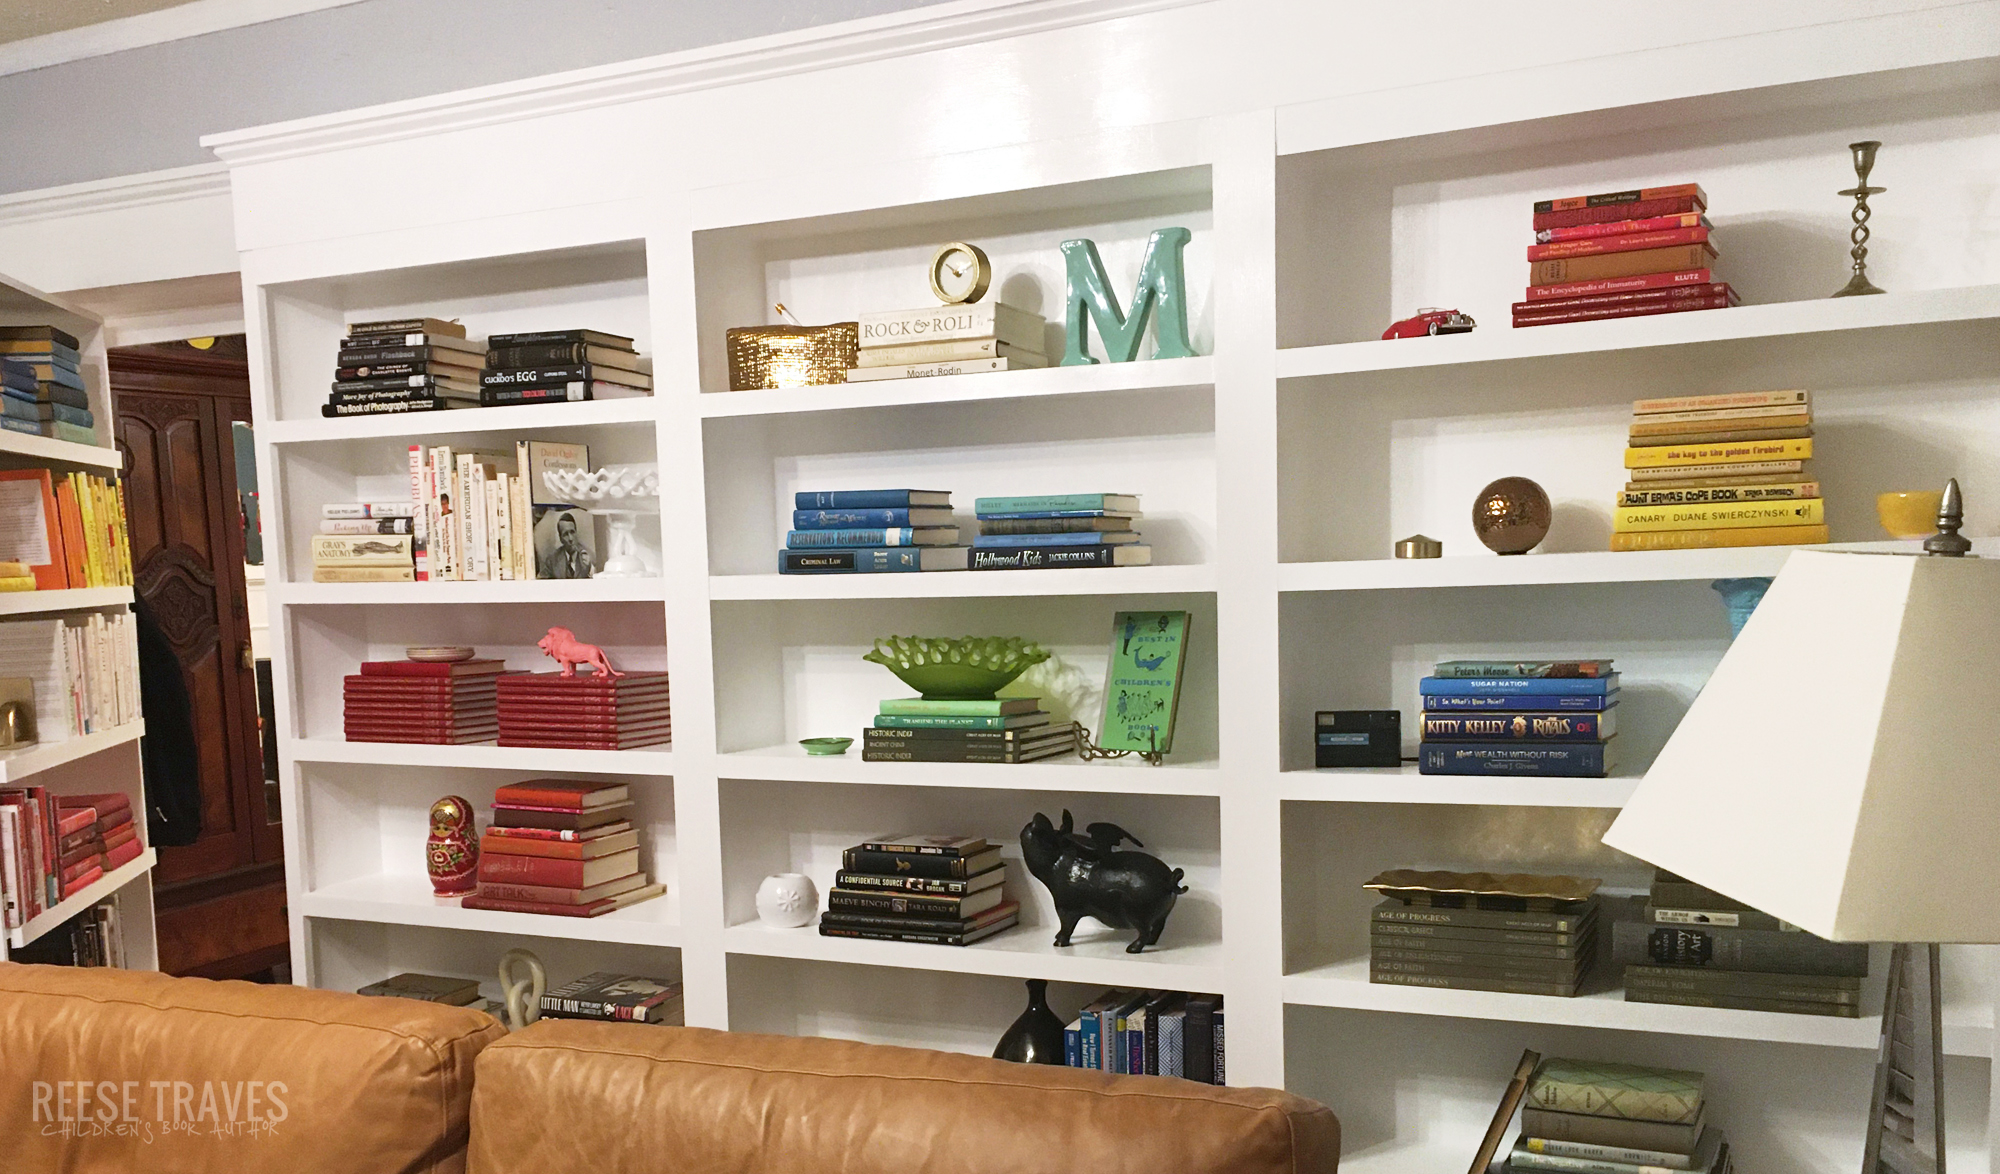 Side 2 of bookshelves with a hidden bookshelf door and rainbow colored books using color blocking bookshelf styling.